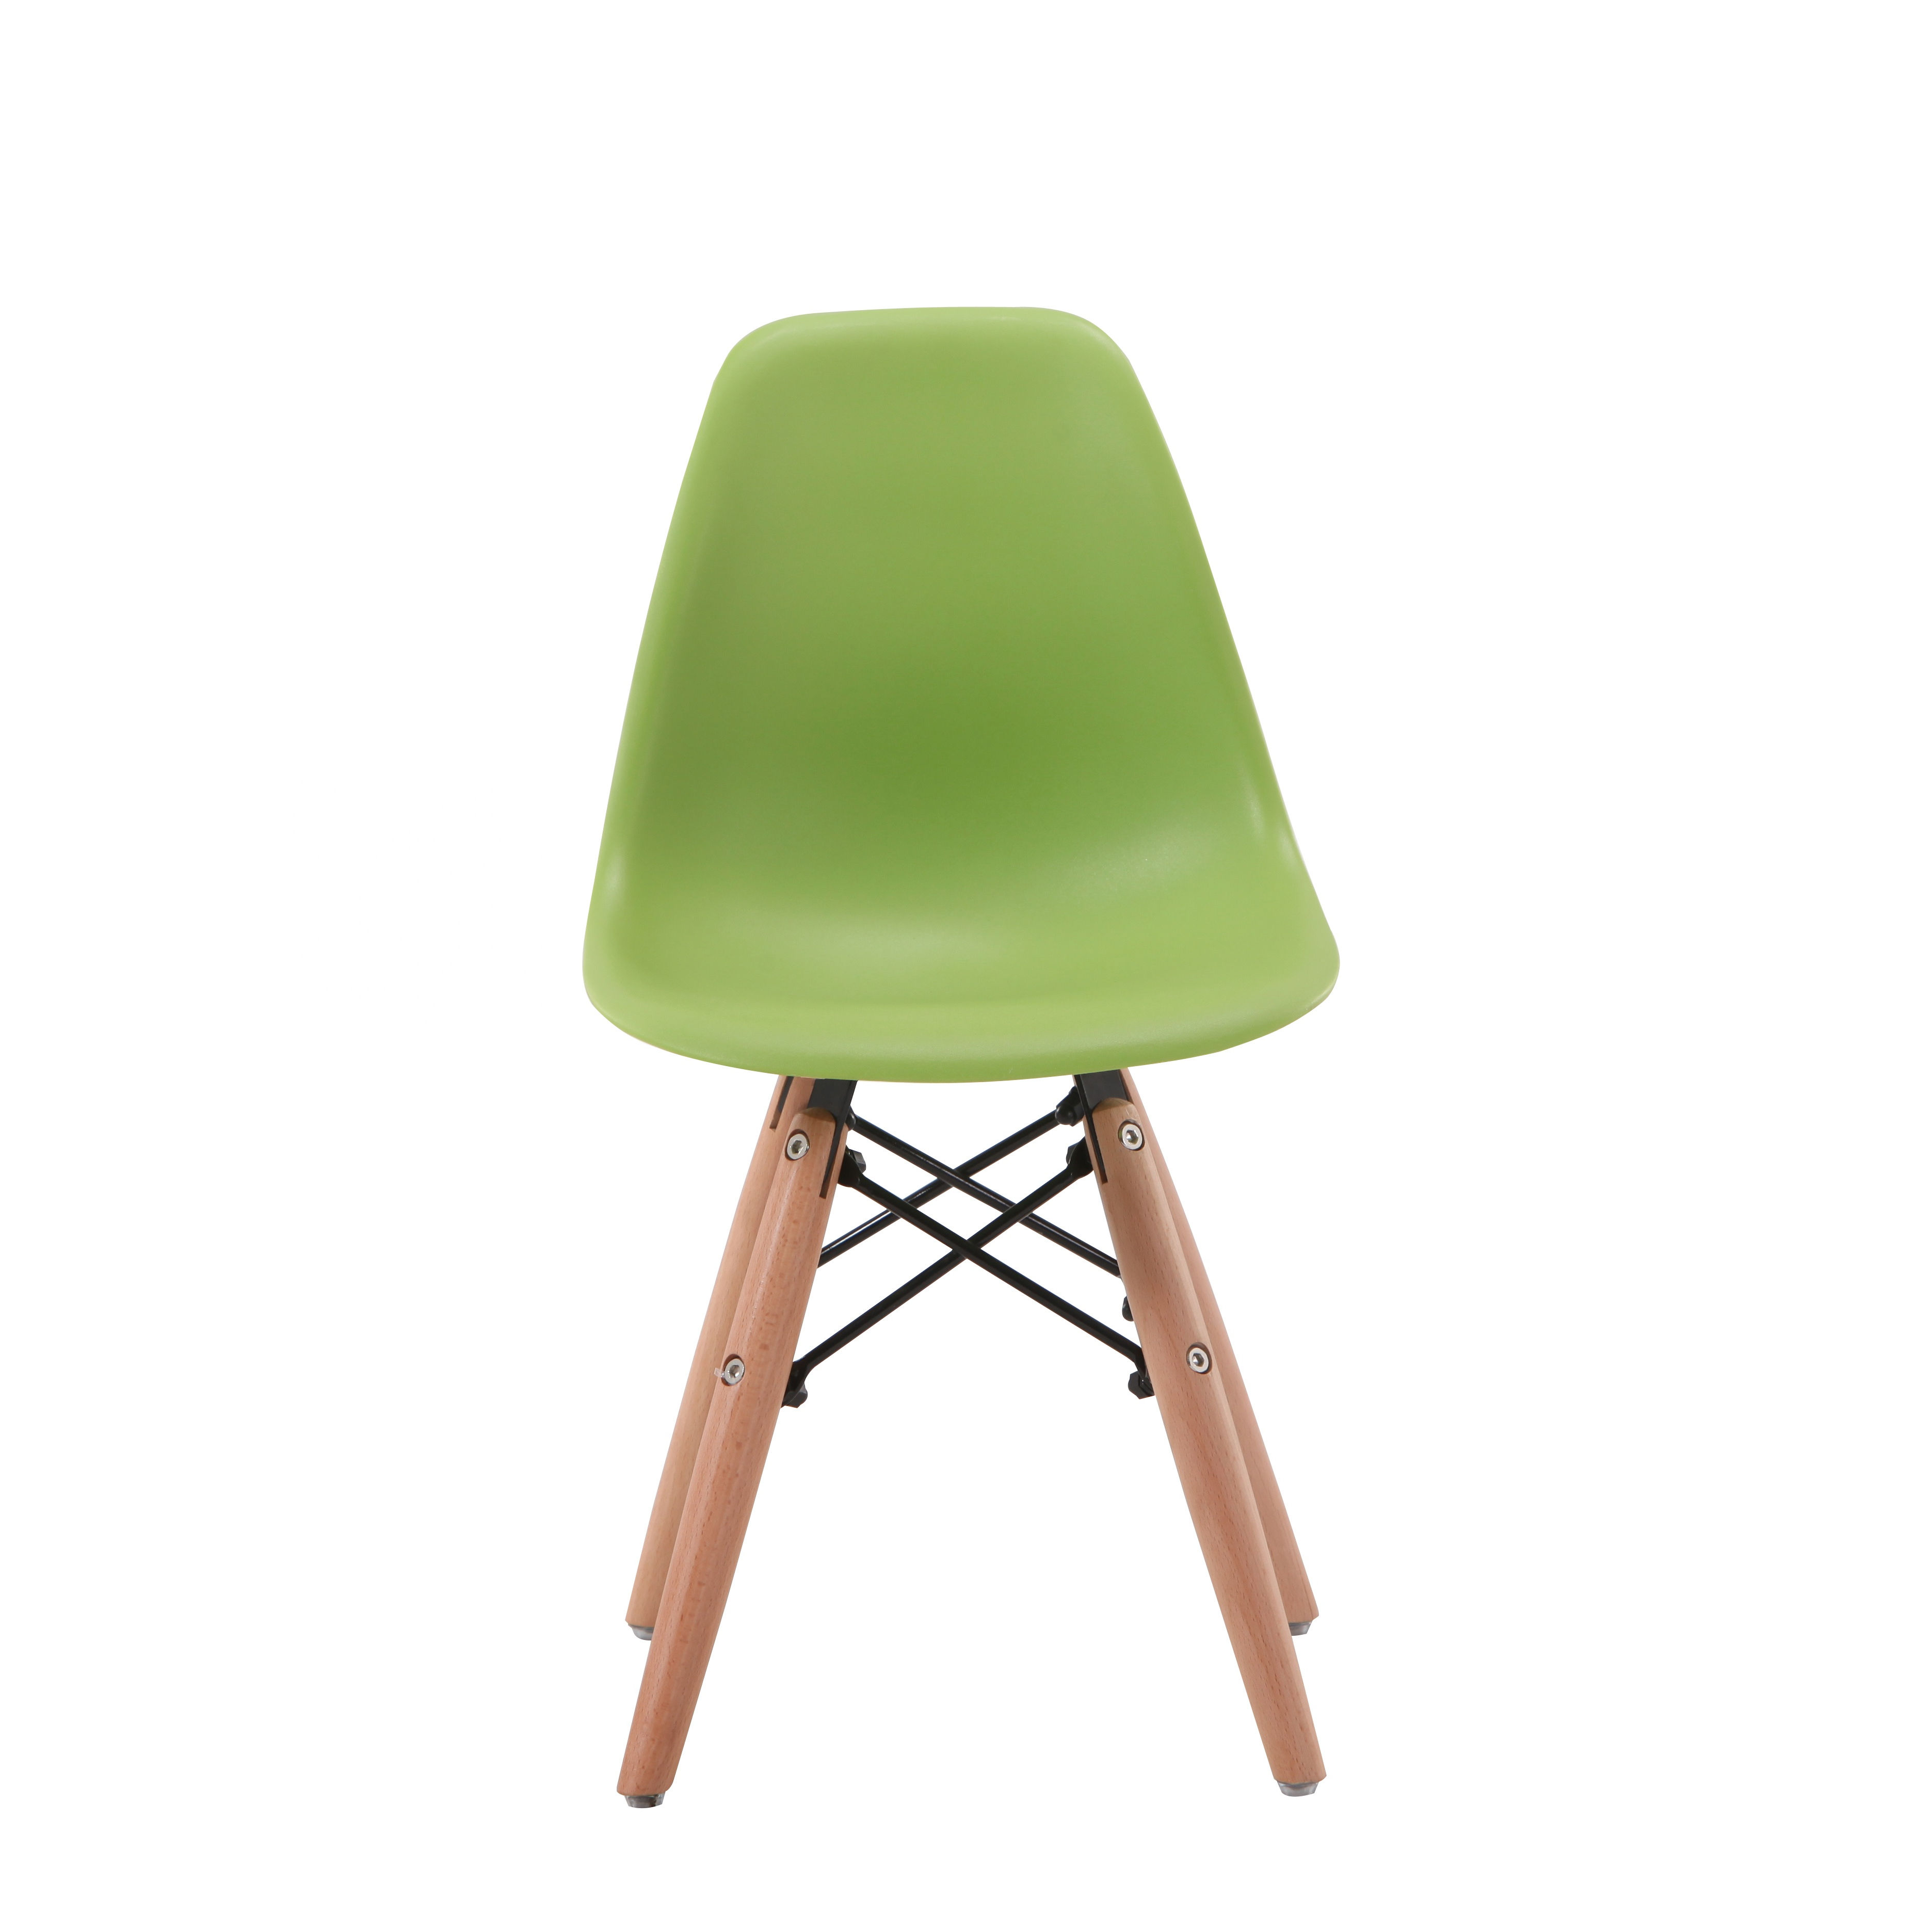 Modern Wooden Leg Dining Chairs Minimalist Computer Office Meeting Chair Casual Home Back Seat Coffee Shop PP Chair Furniture